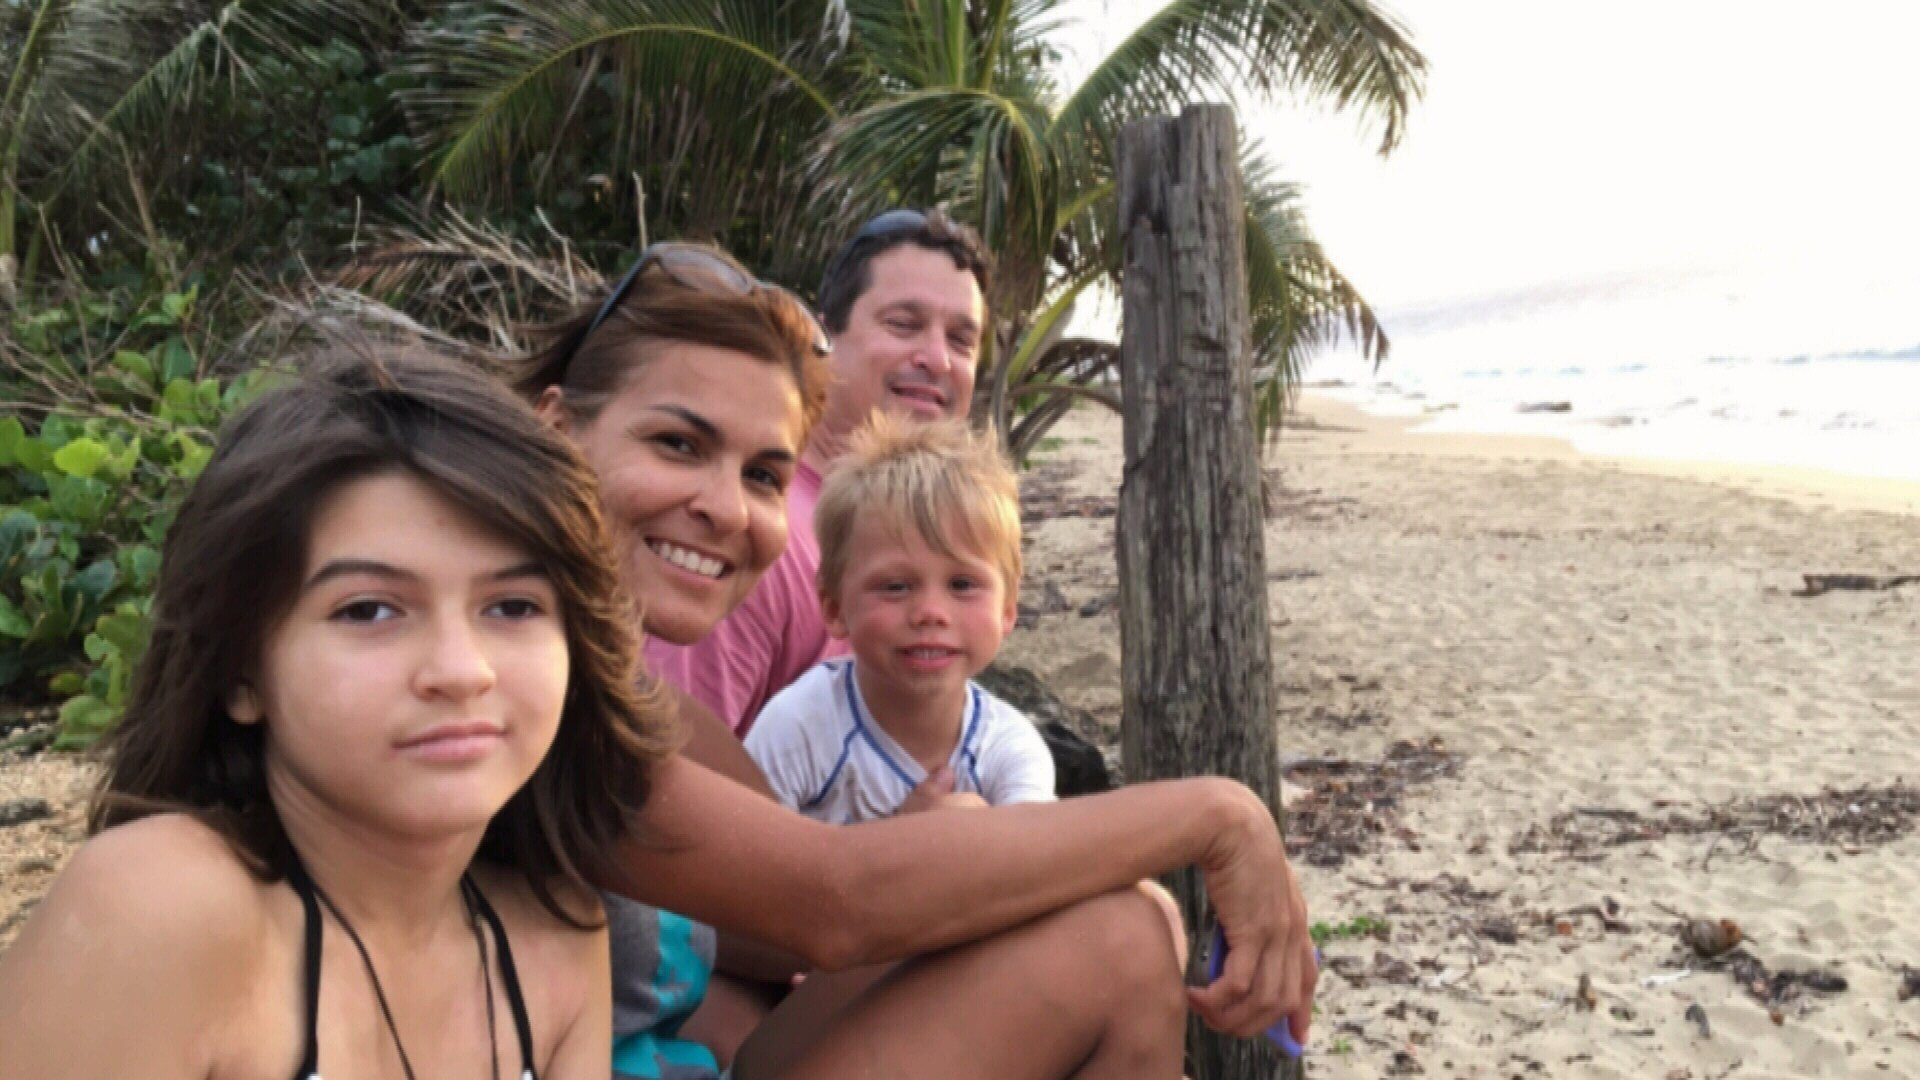 Customs pilot Herman Cestero had not seen his family since they evacuated to the United States the day after Hurricane Maria struck Puerto Rico.